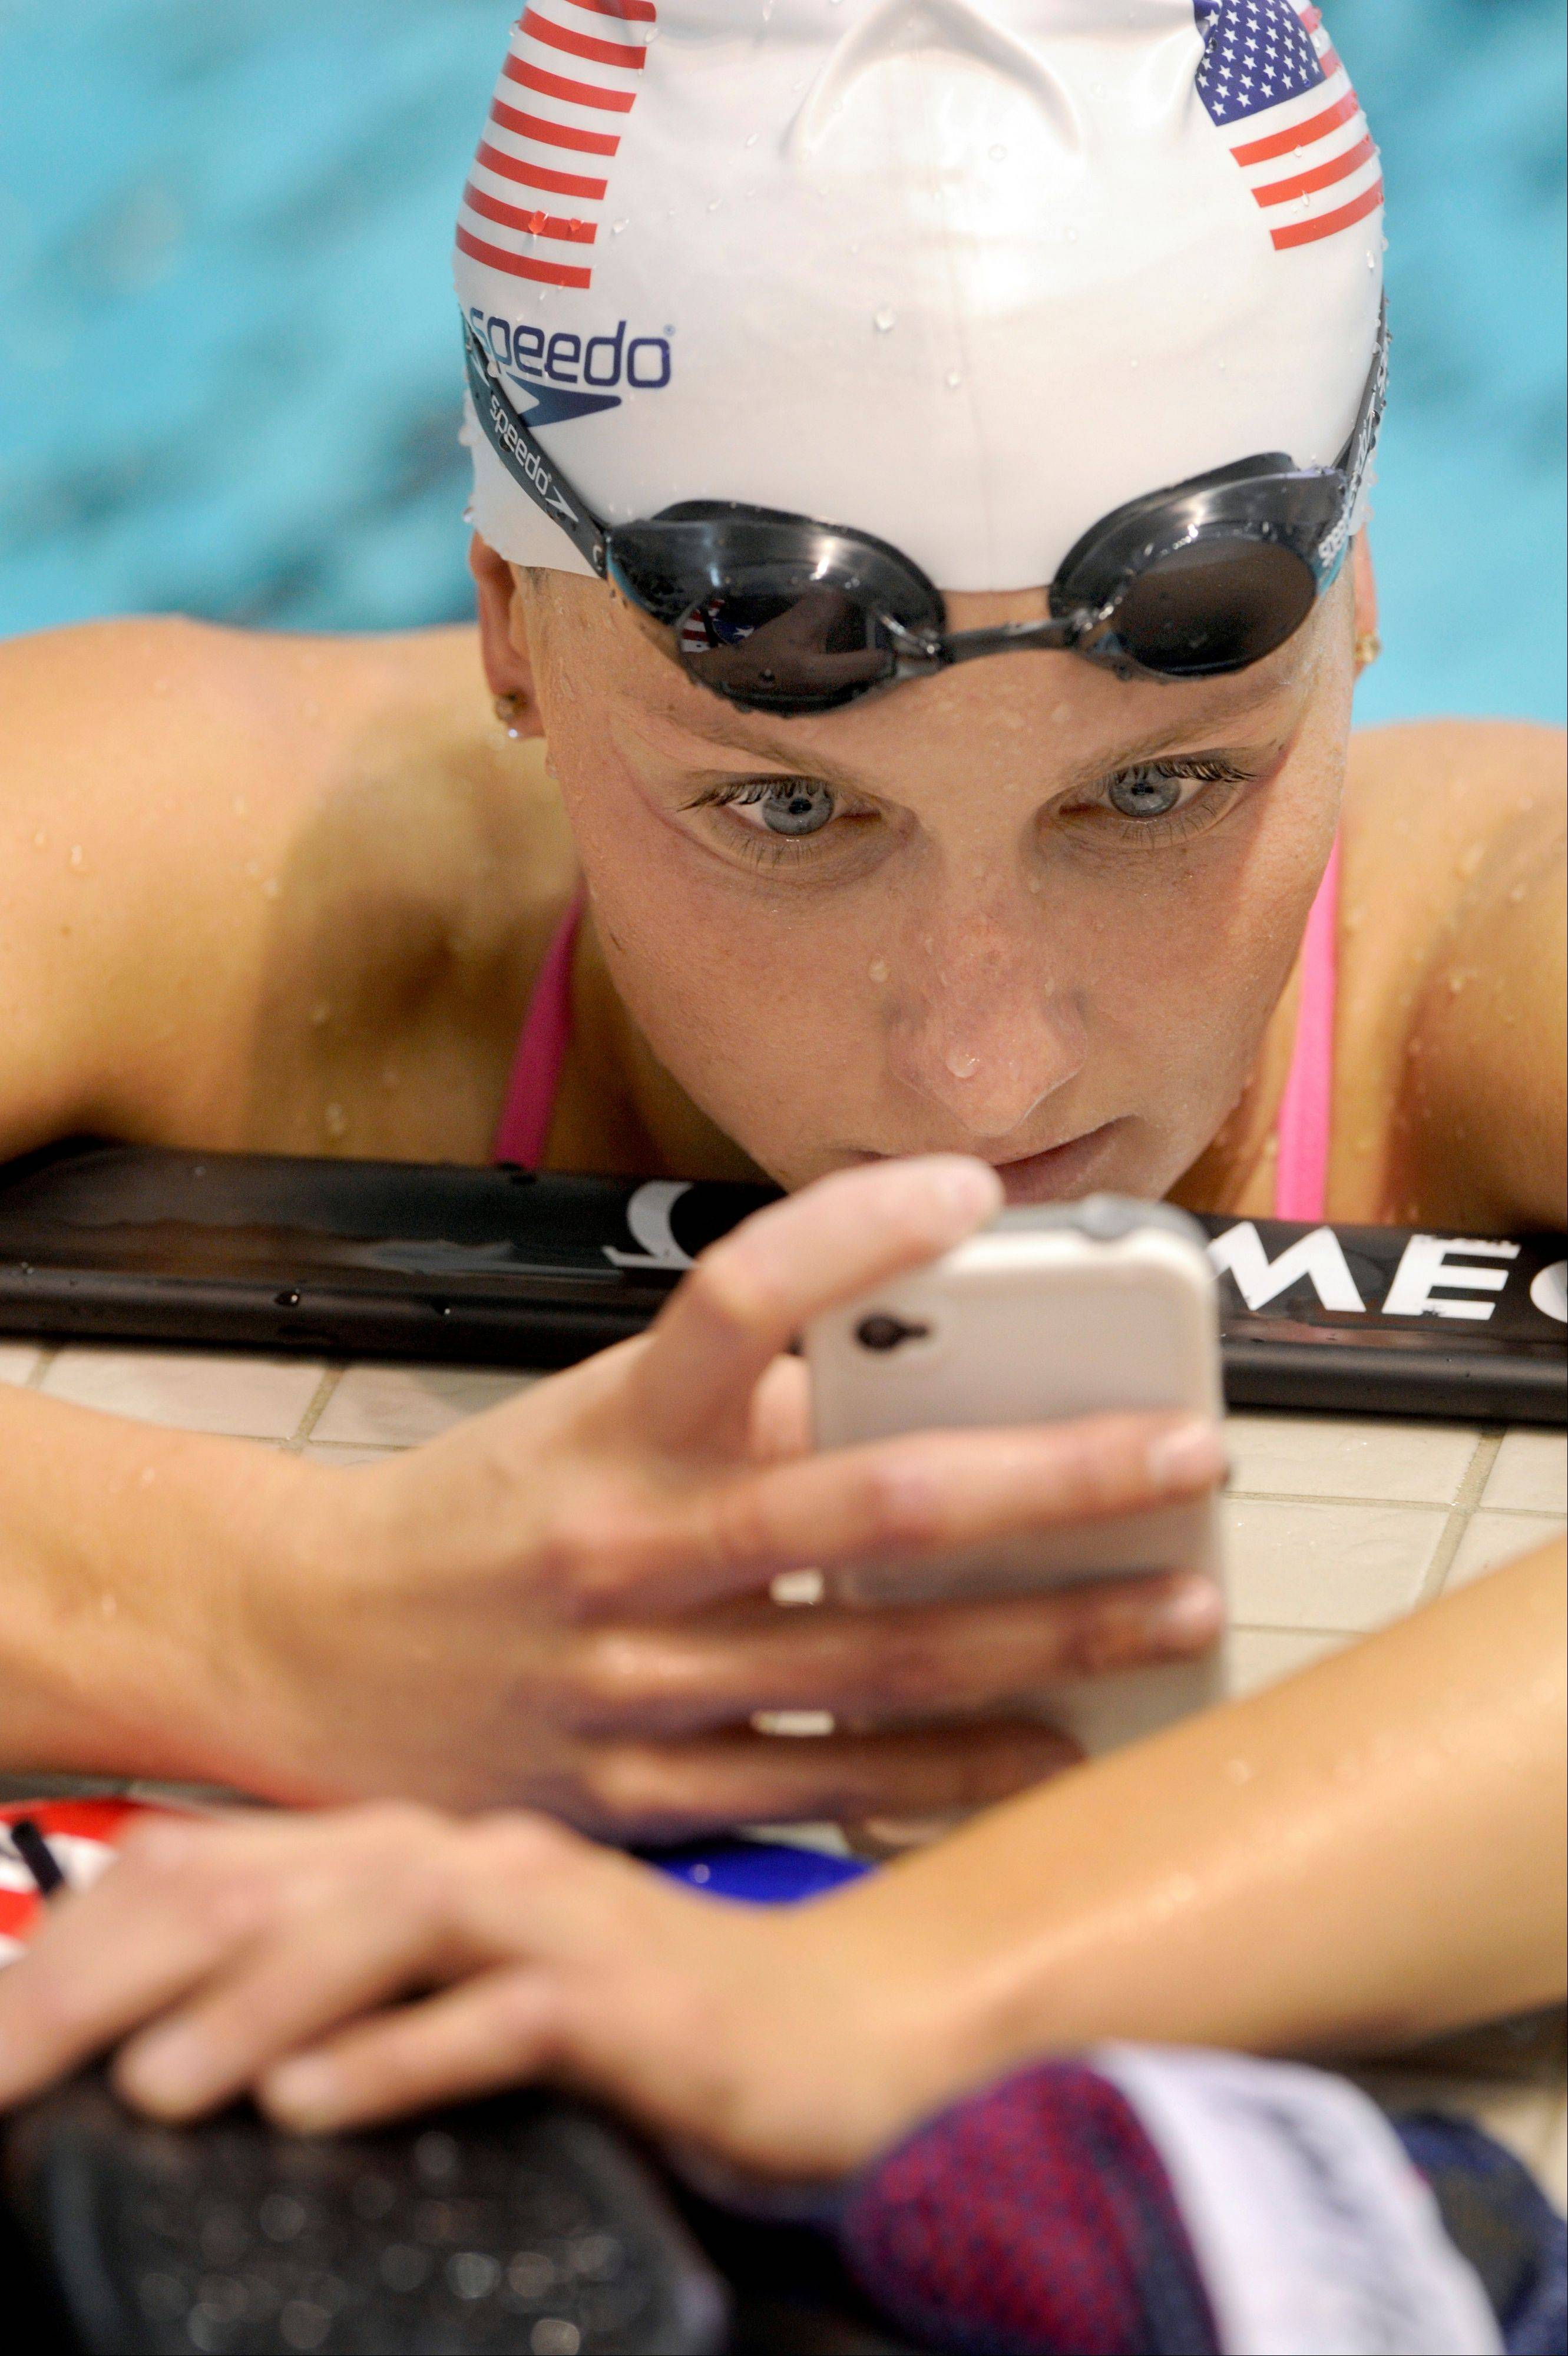 U.S. Olympic swim team member Kara Lynn Joyce checks her phone between practice laps Thursday at the University of Tennessee's Allan Jones Aquatic Center. NBC is offering two free mobile apps for the London Games.